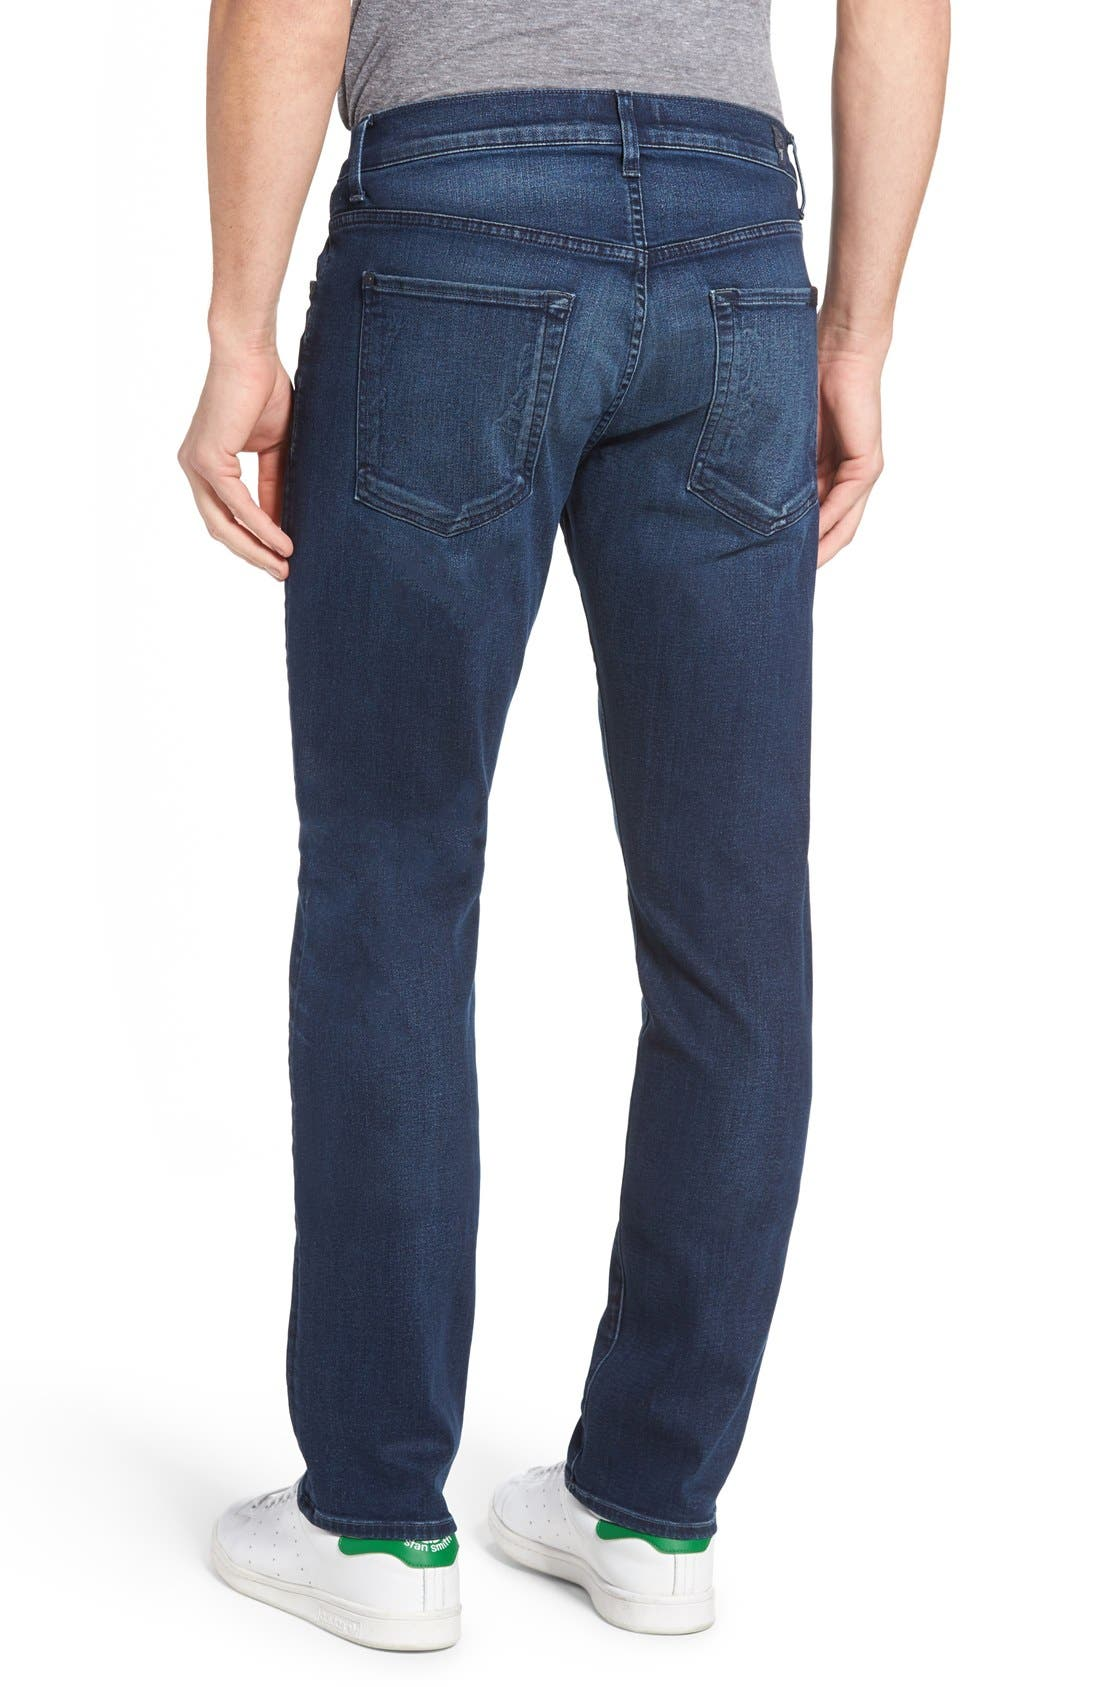 Slimmy Luxe Performance Slim Fit Jeans,                             Alternate thumbnail 3, color,                             402